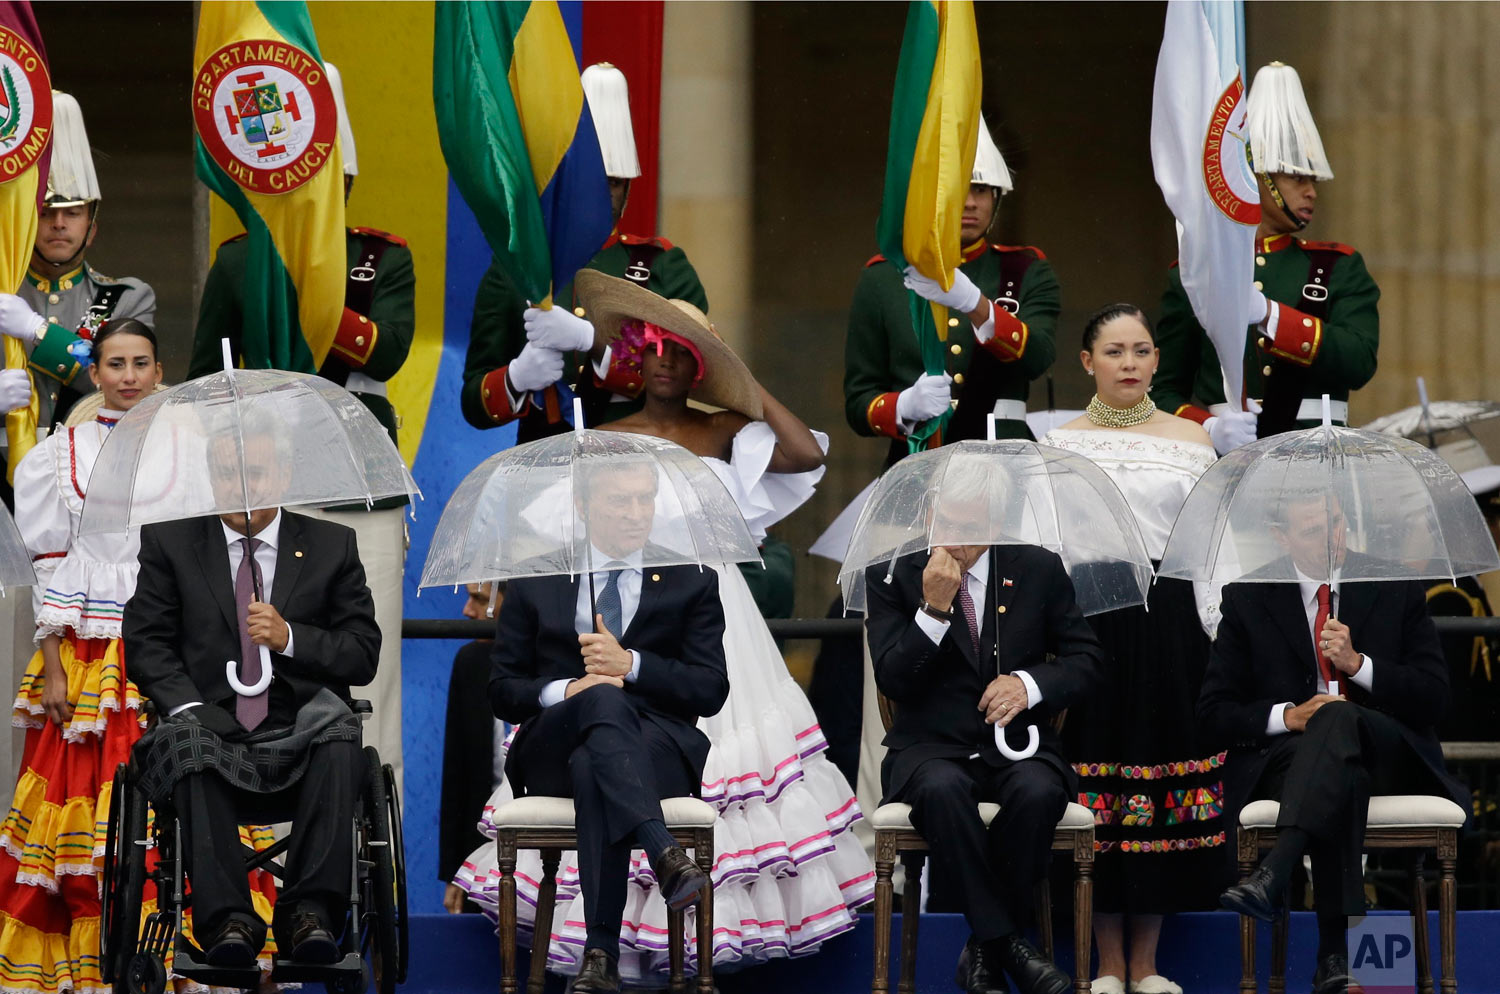 Leaders, from left, Ecuador's President Lenin Moreno, Argentina's President Mauricio Macri, Chile's President Sebastian Pinera and Mexico's President Enrique Pena Nieto use umbrellas as it rains during the inauguration ceremony for Colombia's new President Ivan Duque in Bogota, Colombia, Aug. 7, 2018. The young protégé of a powerful former president was sworn in as Colombia's new leader Tuesday, tasked with guiding the implementation of a peace accord with leftist rebels that remains on shaky ground. (AP Photo/Fernando Vergara)